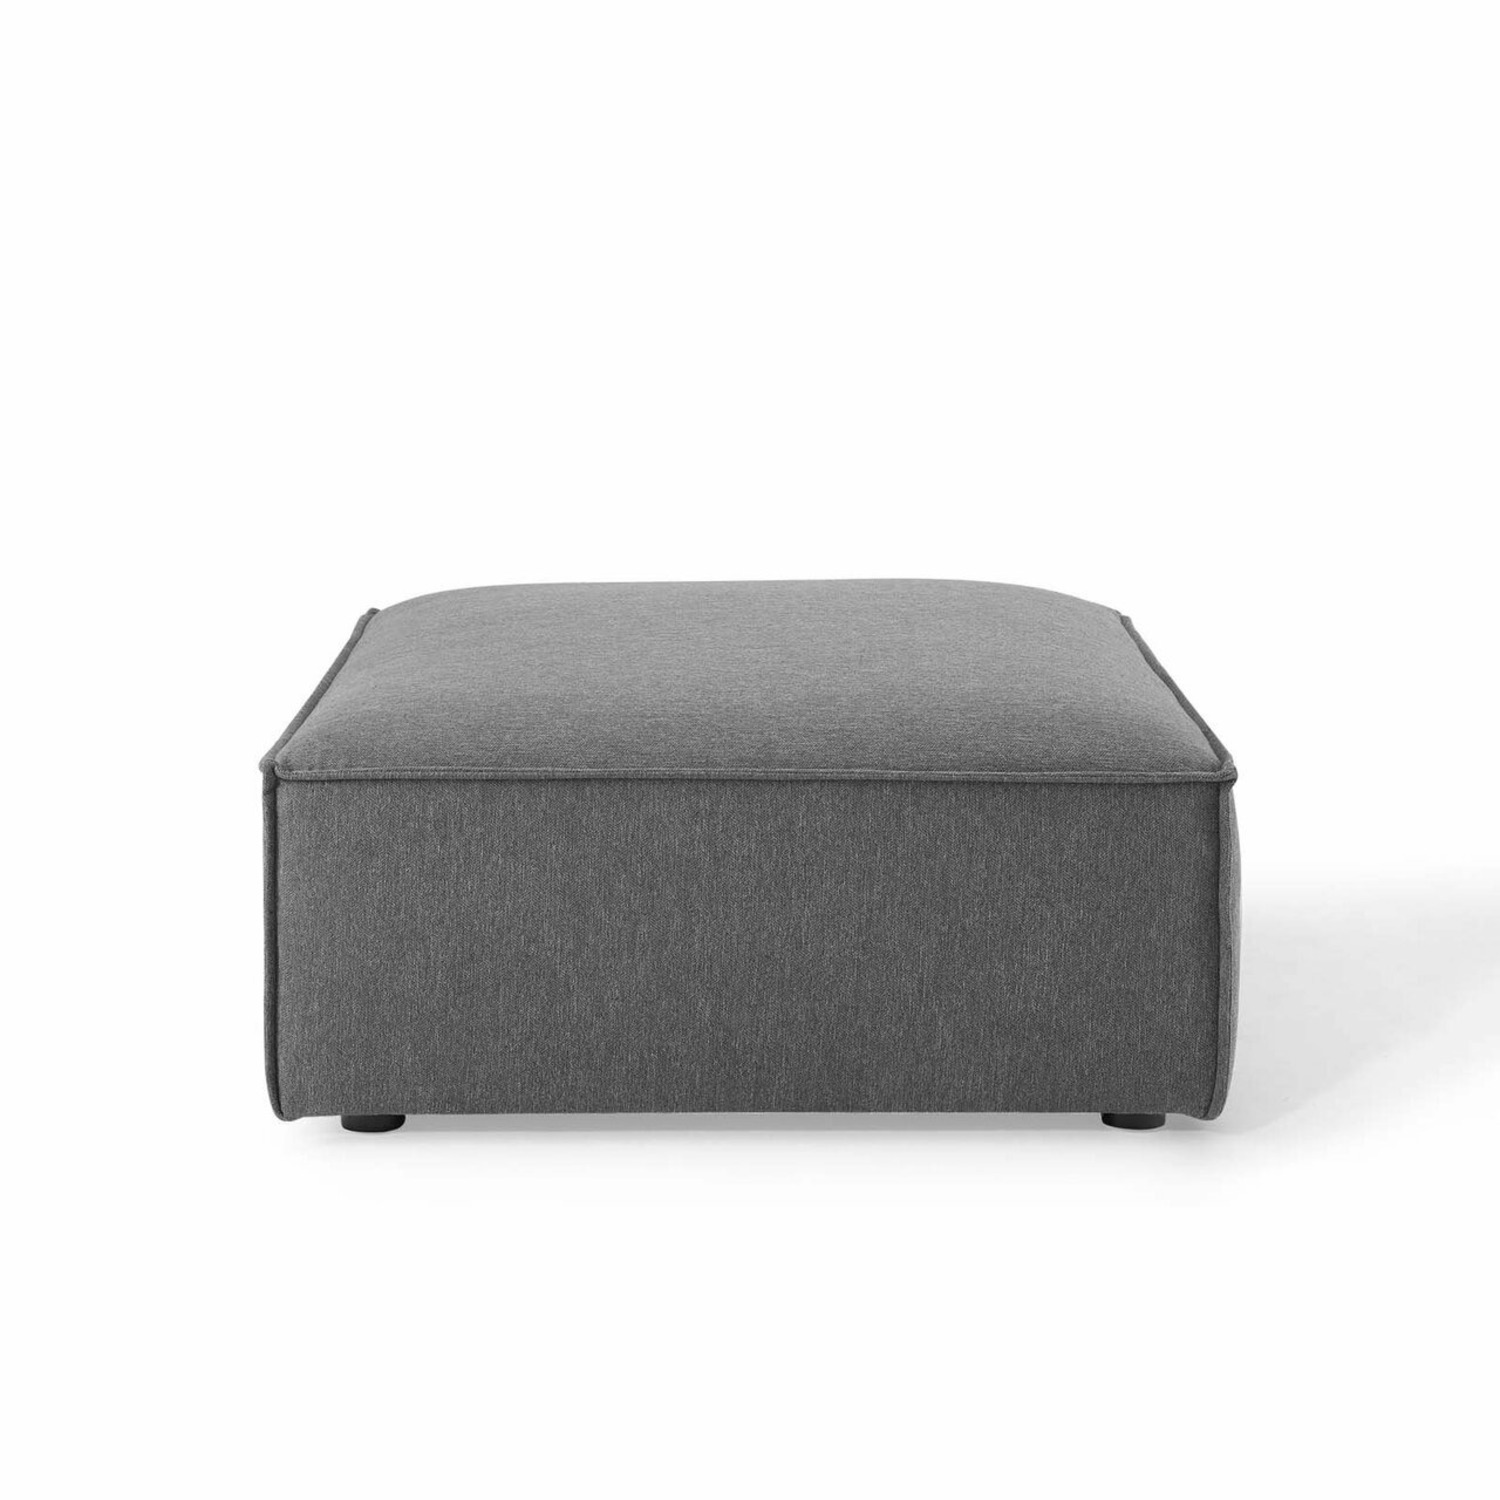 4-Piece Sectional Sofa In Charcoal Fabric Finish - image-8